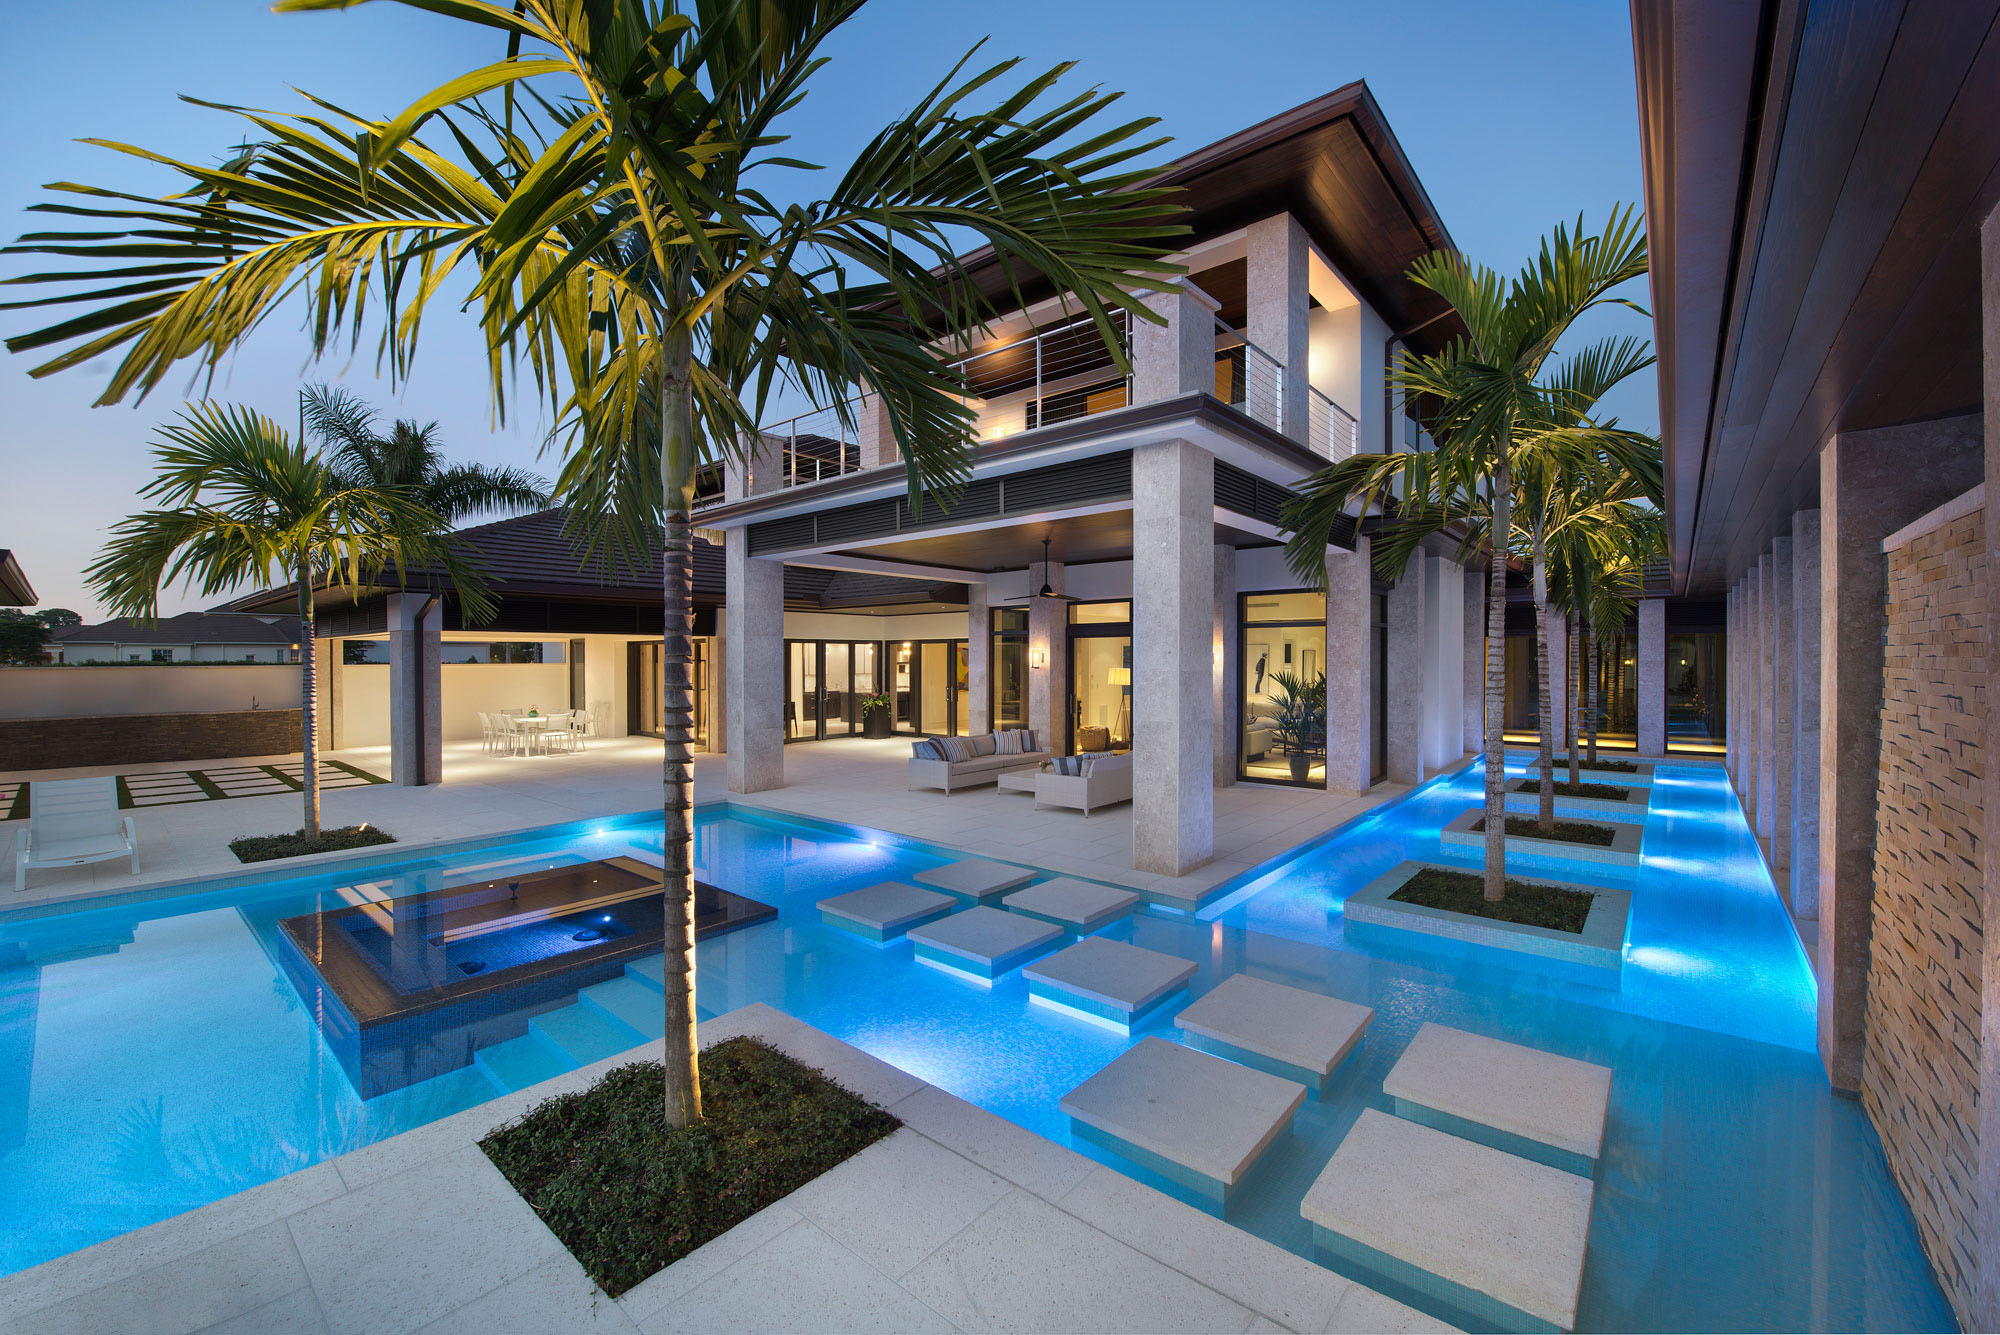 Custom dream home in florida with elegant swimming pool for Hotel design naples